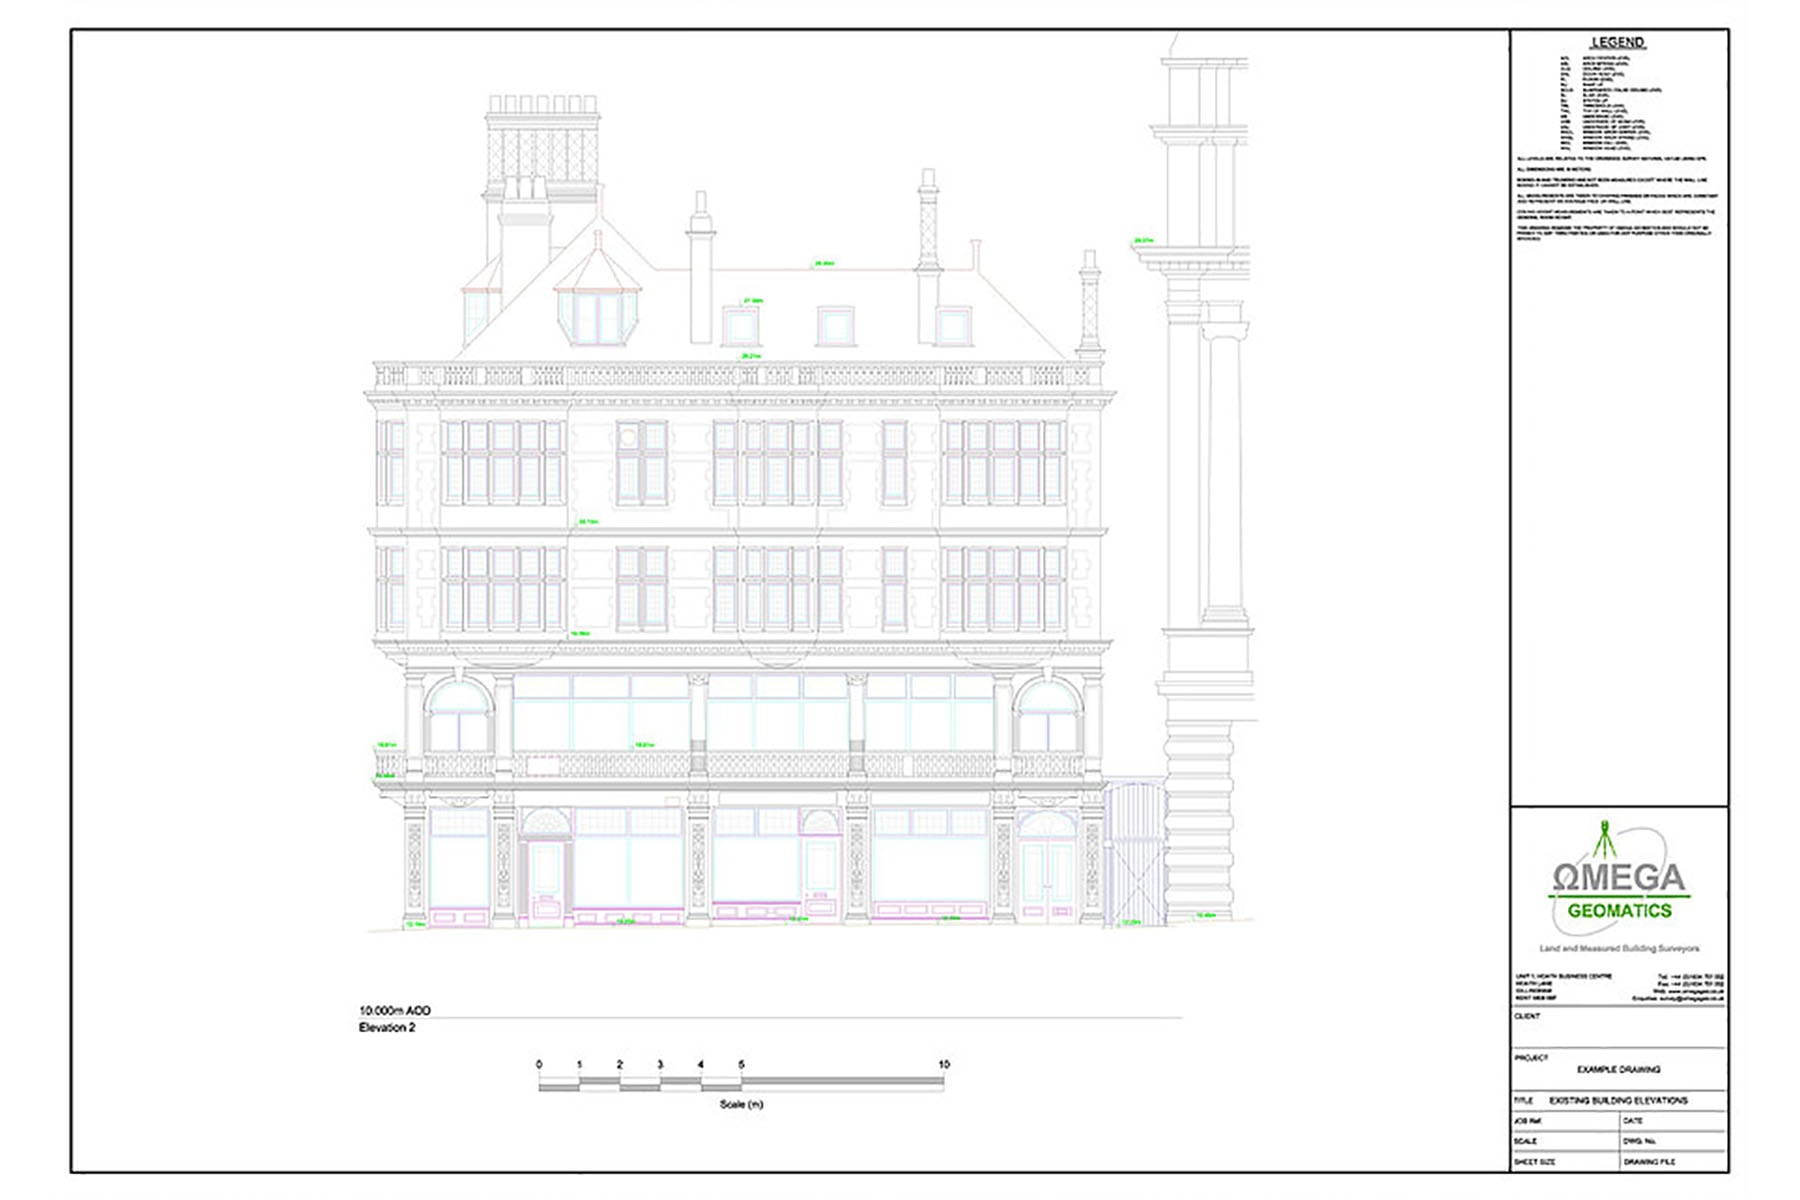 measured building survey drawing